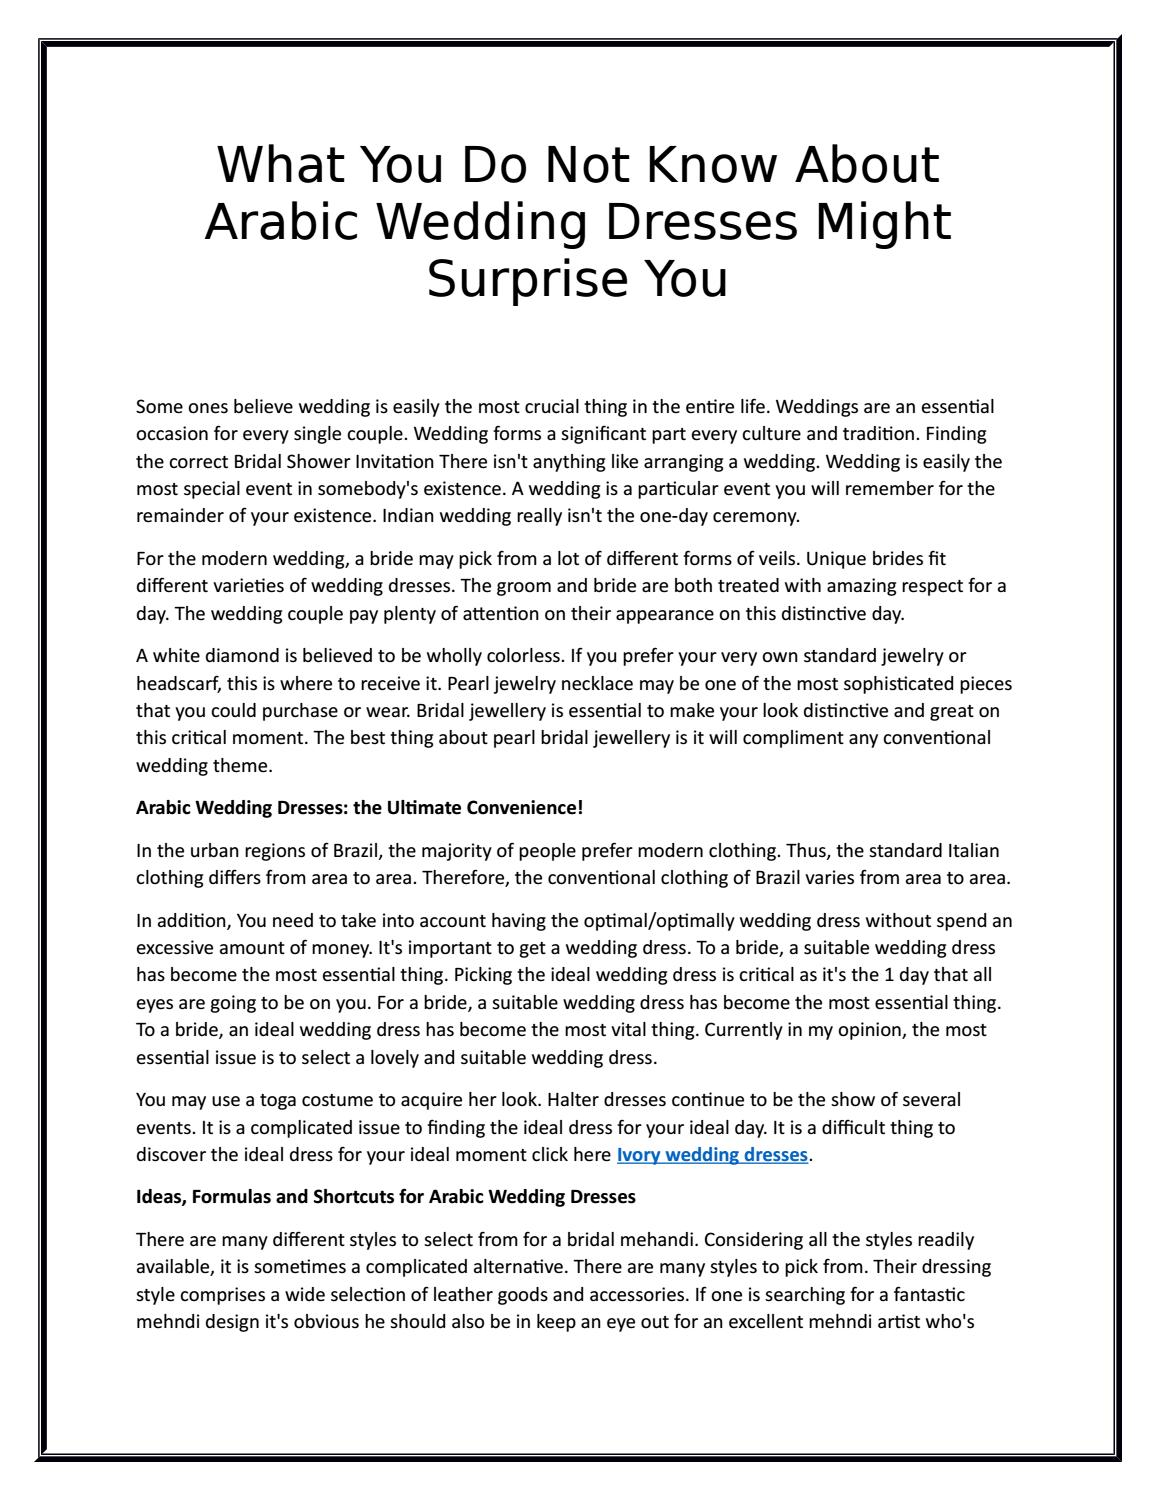 What you do not know about arabic wedding dresses might surprise you ...